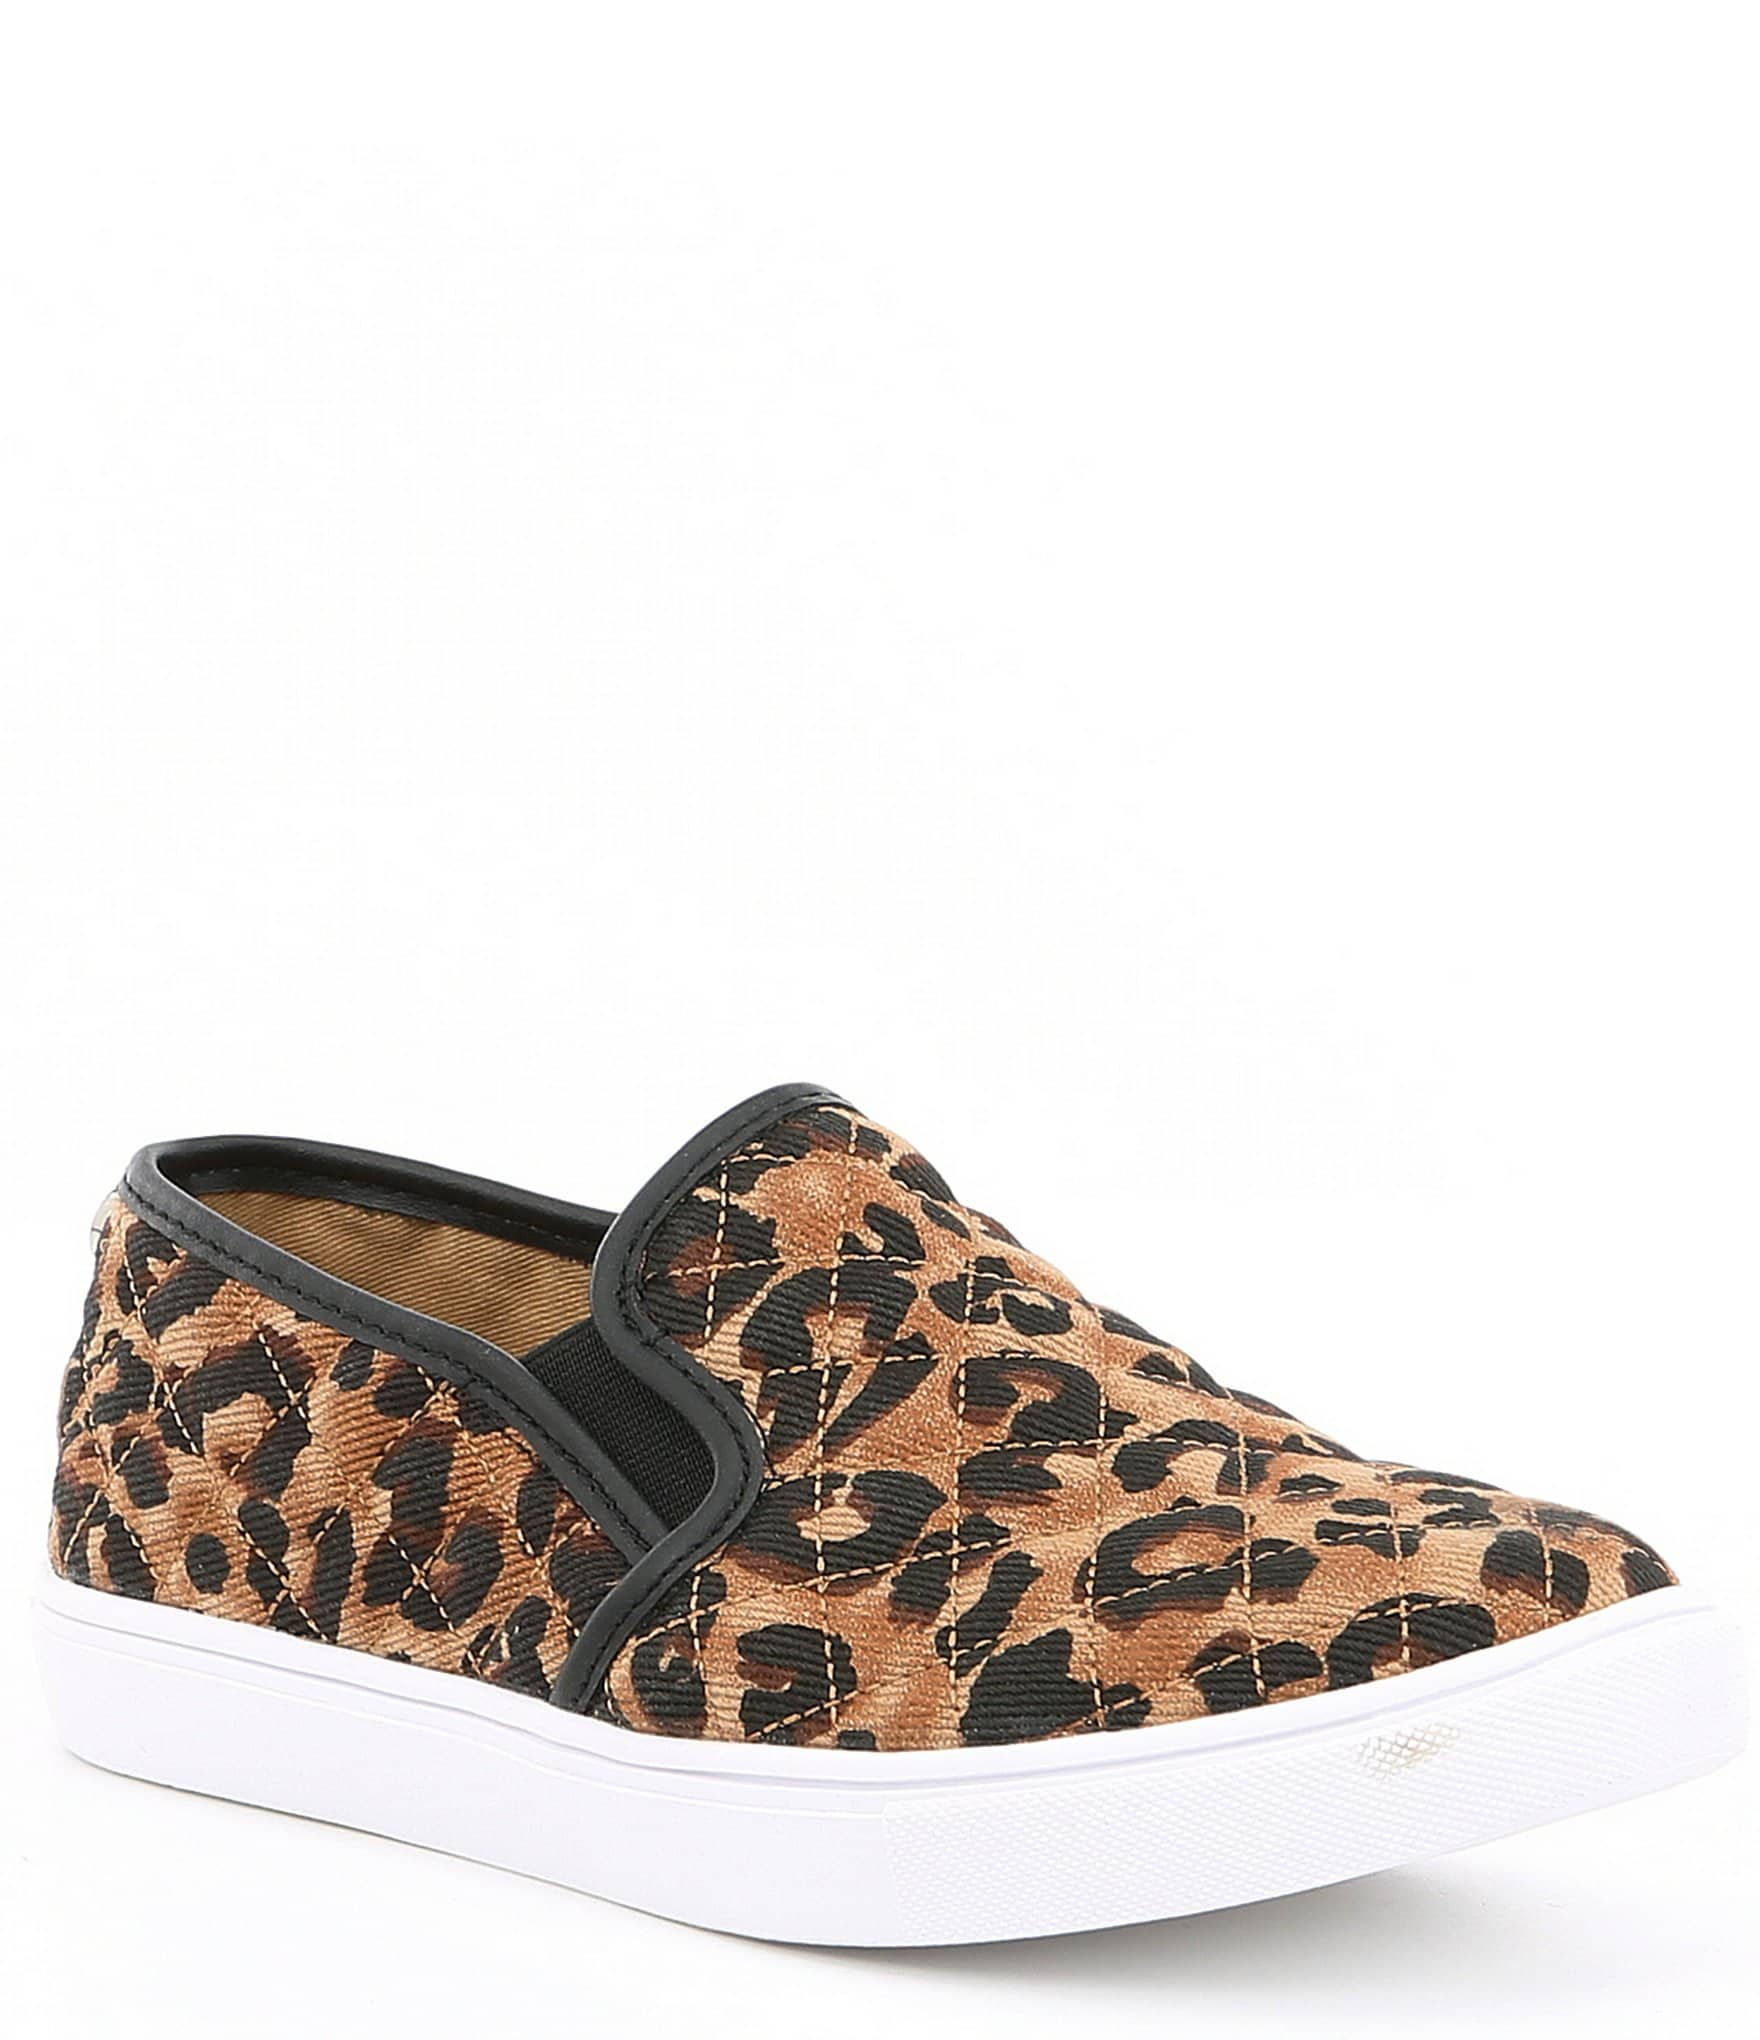 a3b37dc7337 Steve Madden Ecentrcq Leopard Quilted Slip-On Sneakers